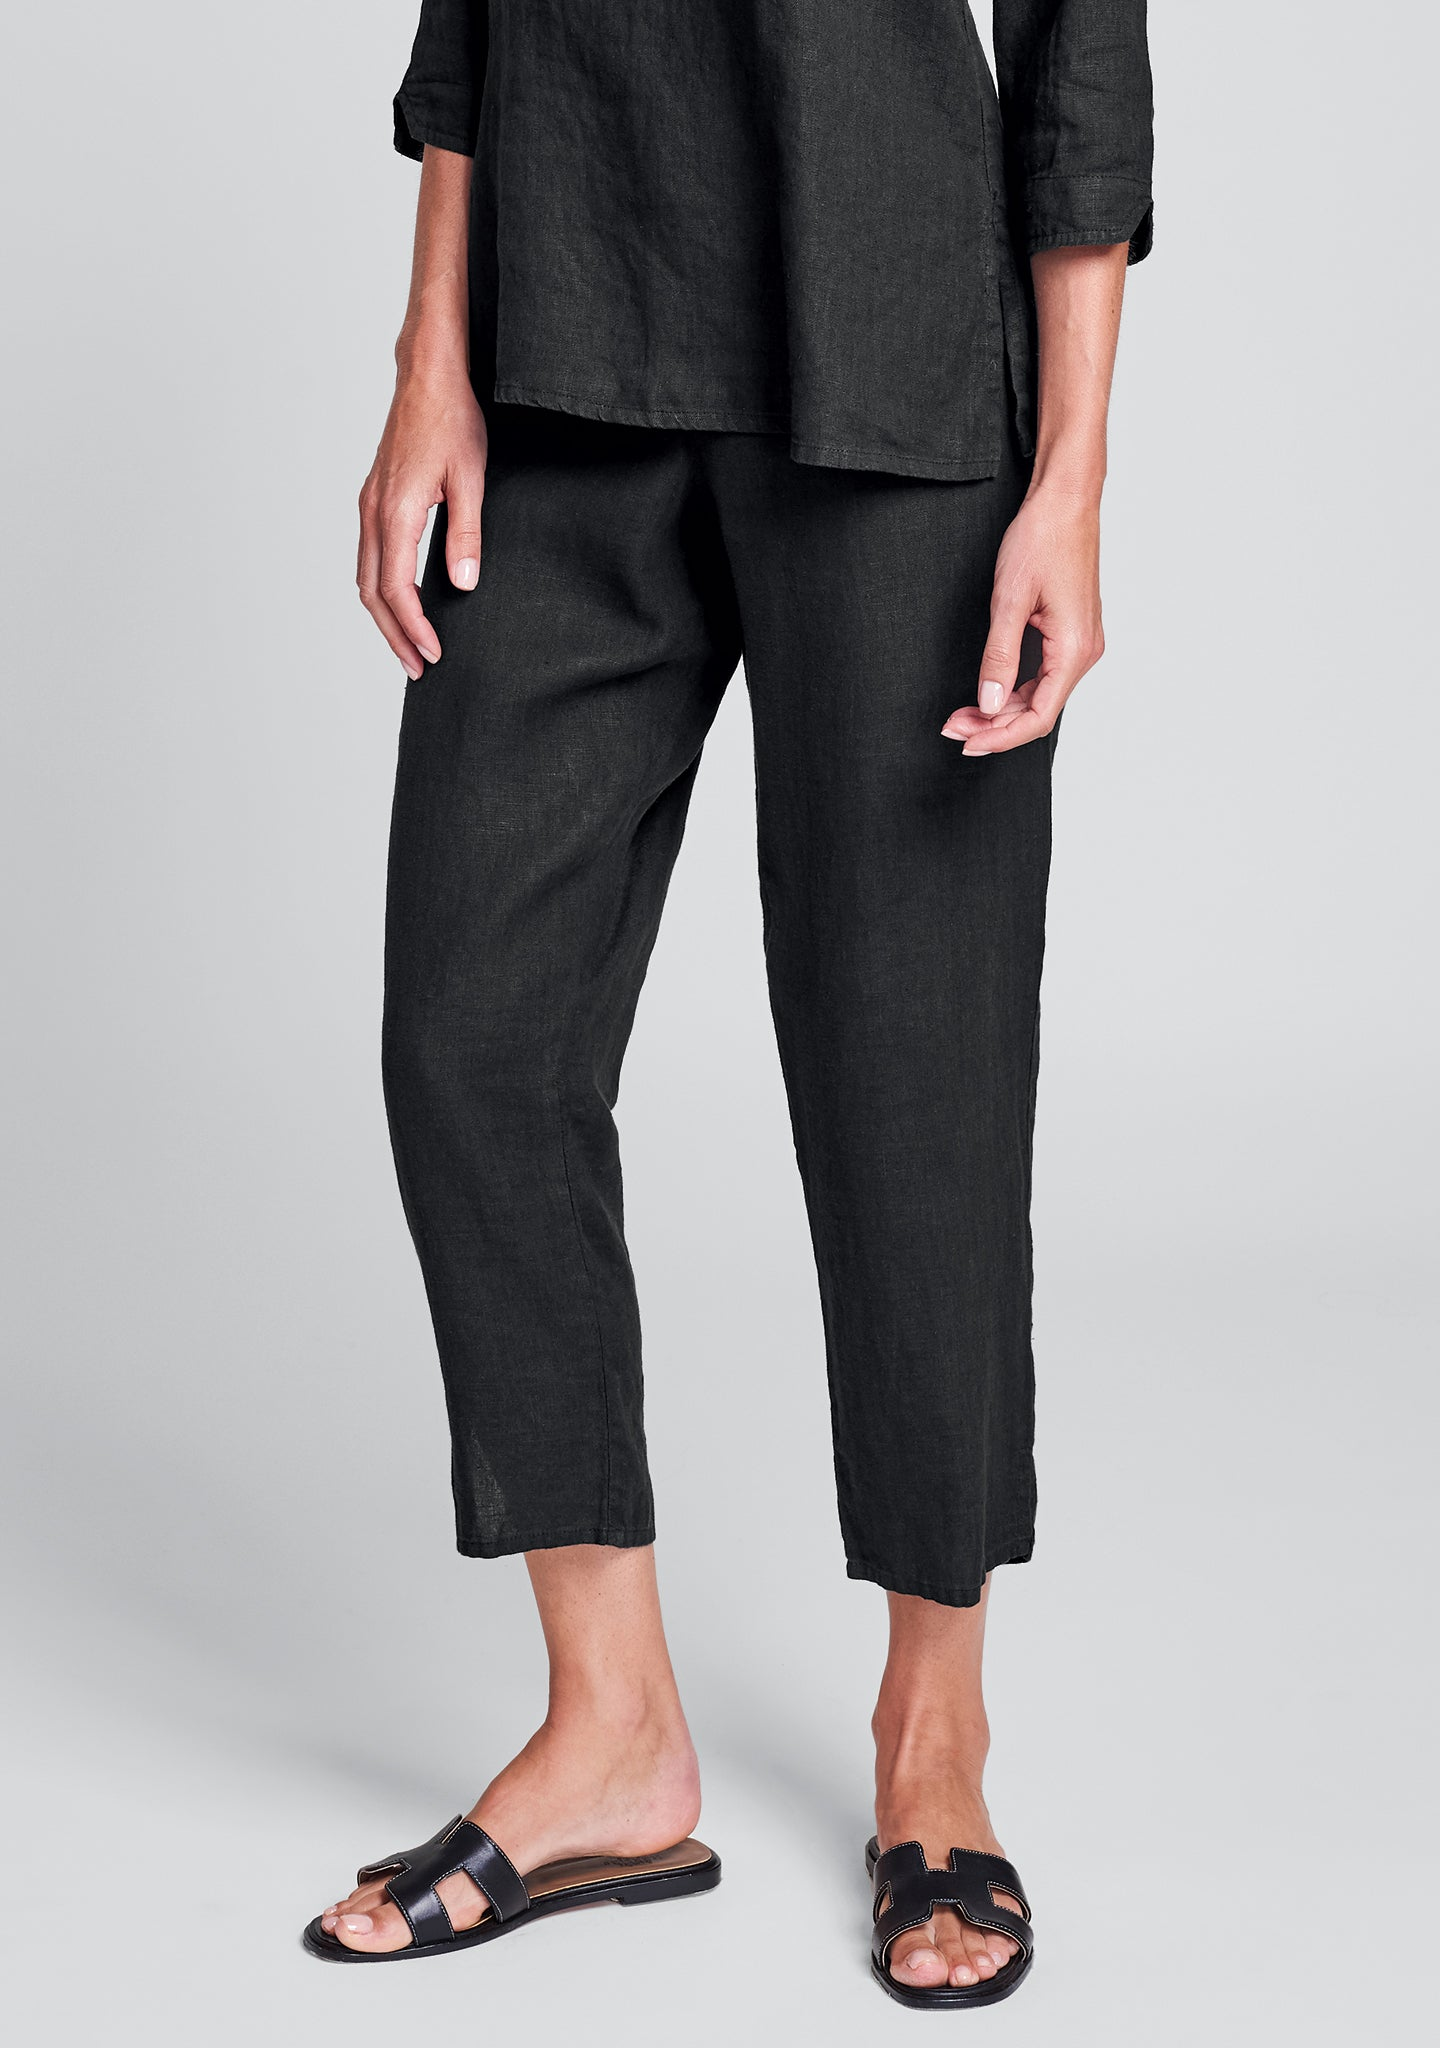 pocketed ankle pant linen pants black